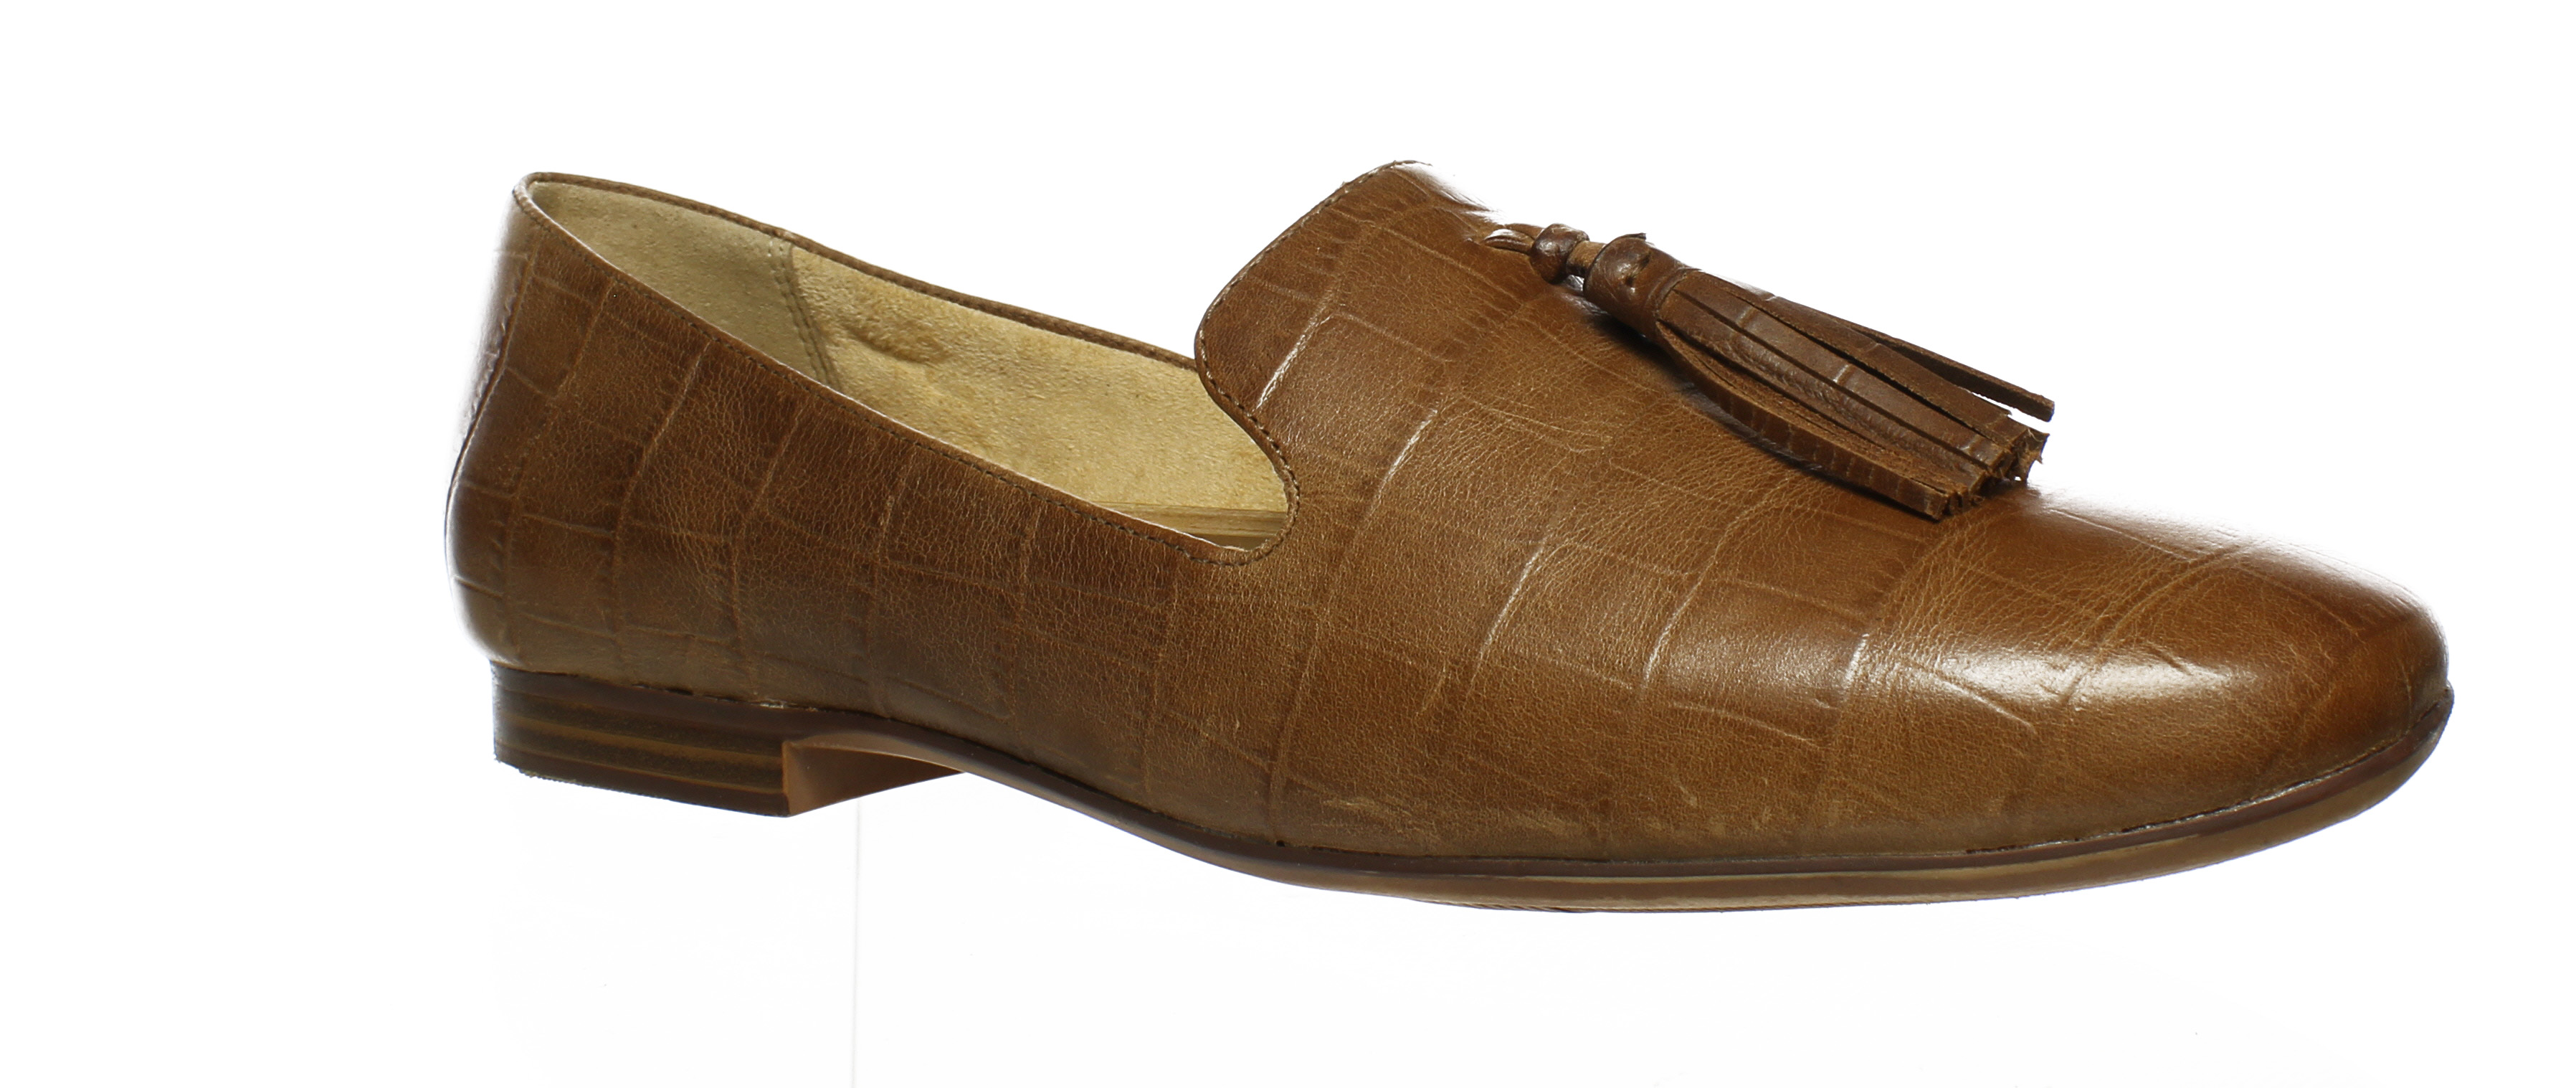 070116c51e9 Naturalizer Womens Elly Tan Loafers Size 9 (AA